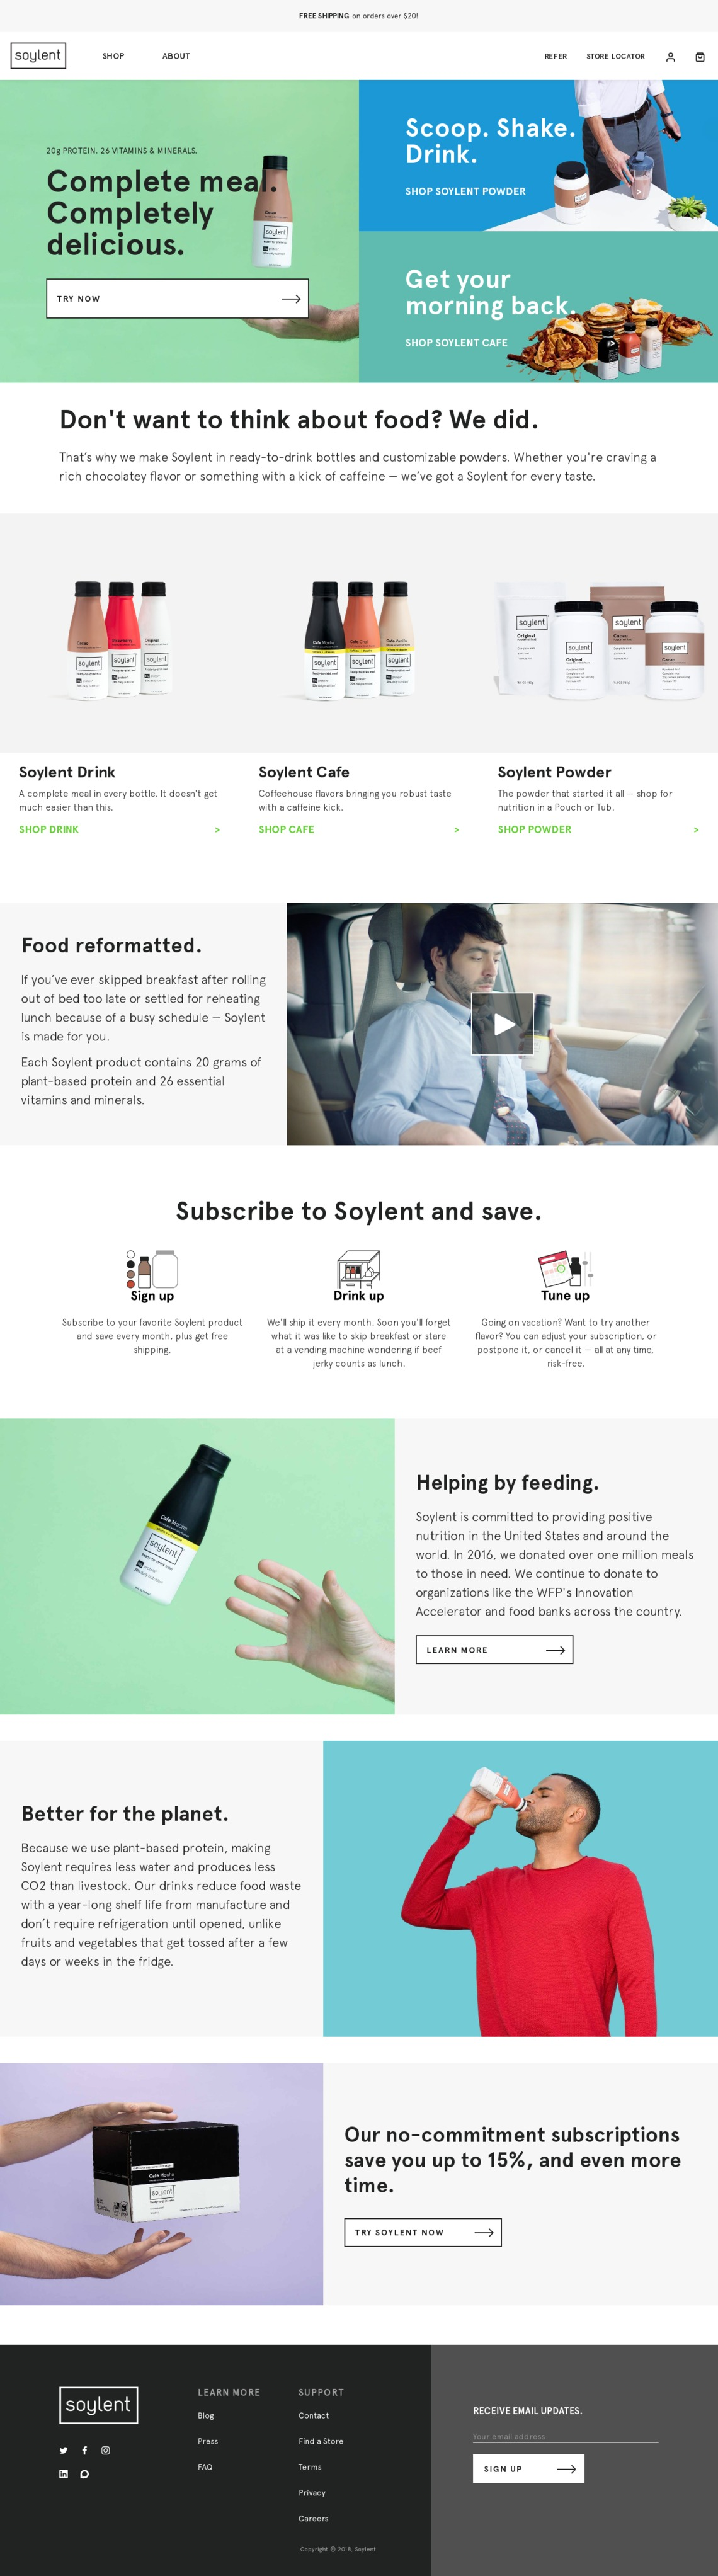 Soylent.com - Let us take a few things off your plate.